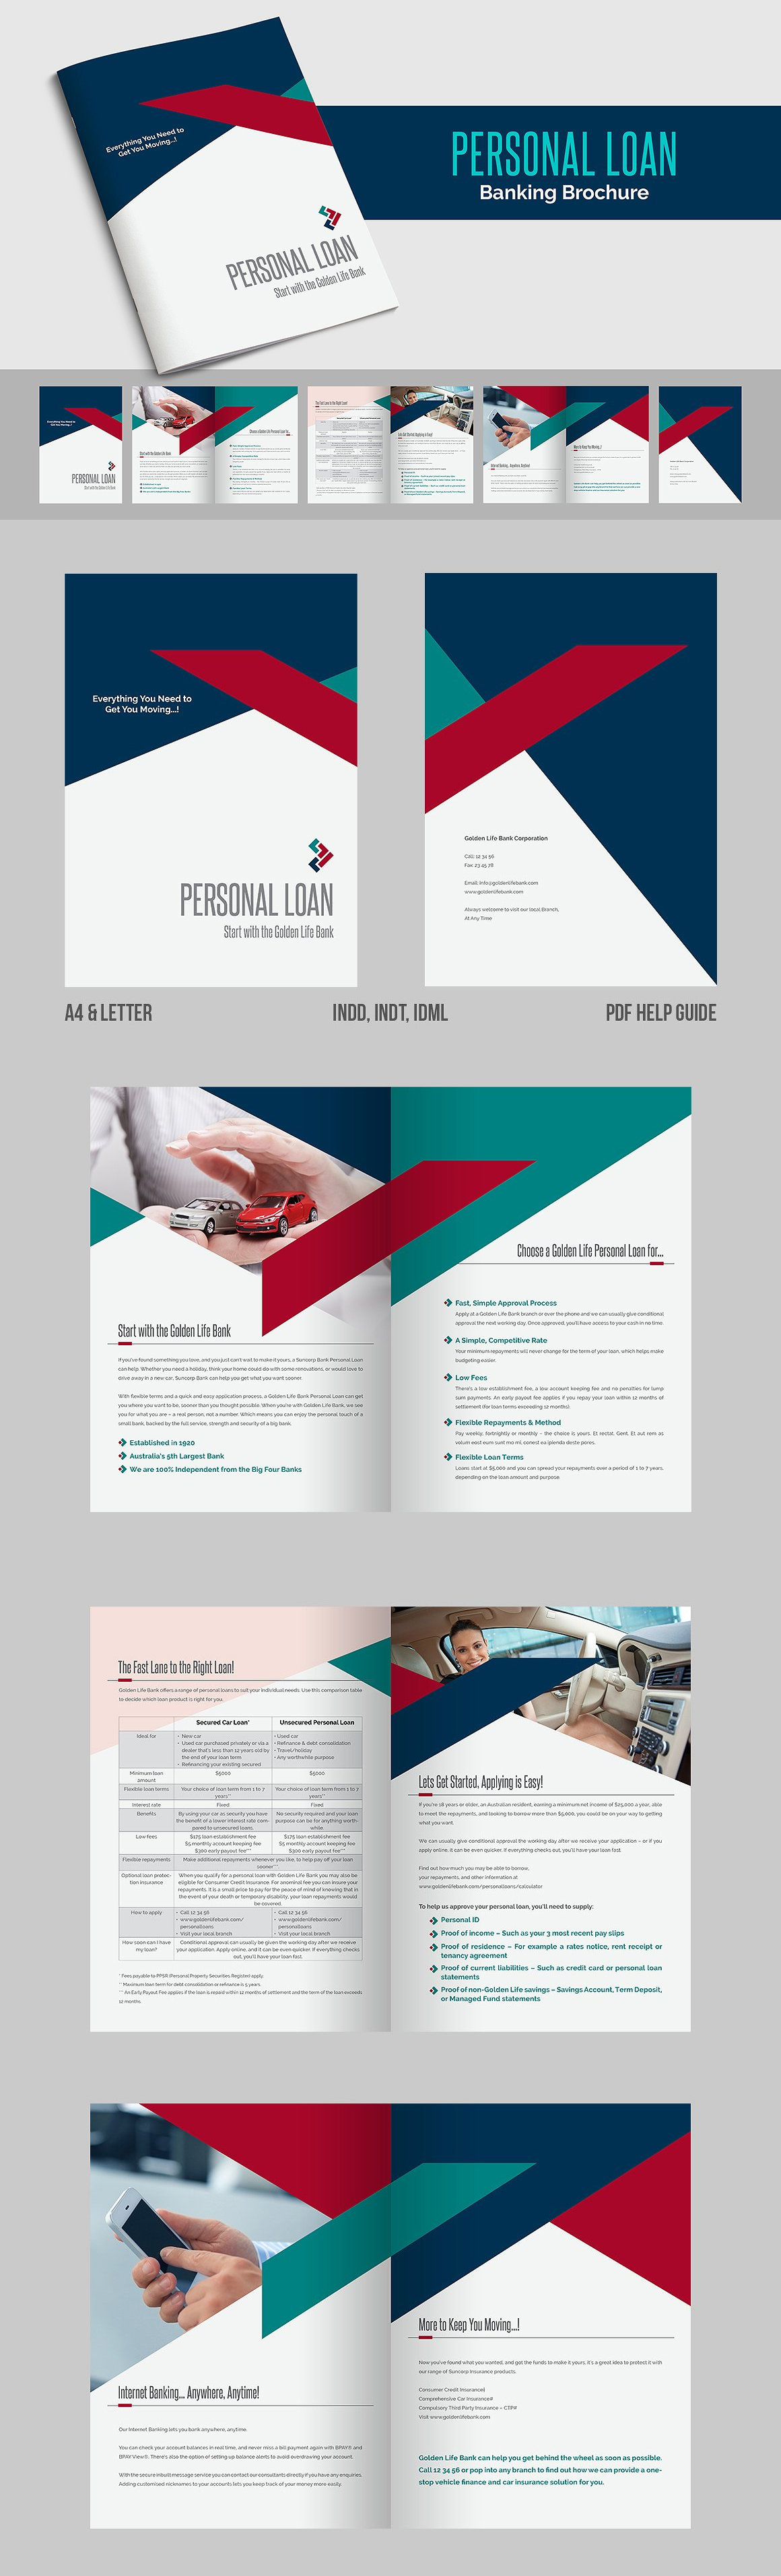 Graphic Design Proposal Template Indesign Awesome Graphic Library